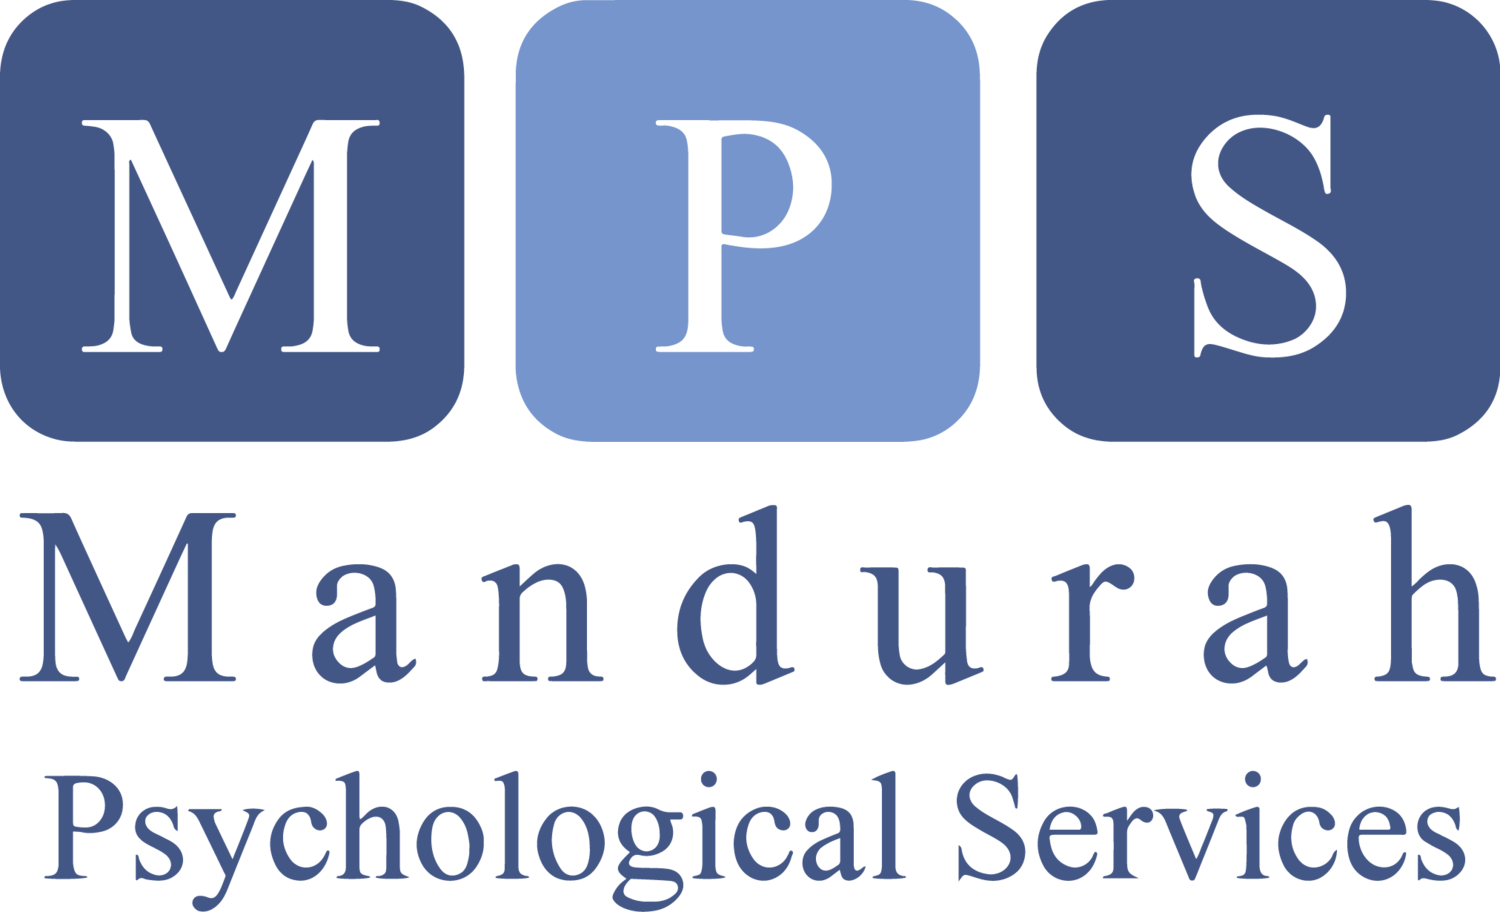 Mandurah Psychological Services Pty Ltd